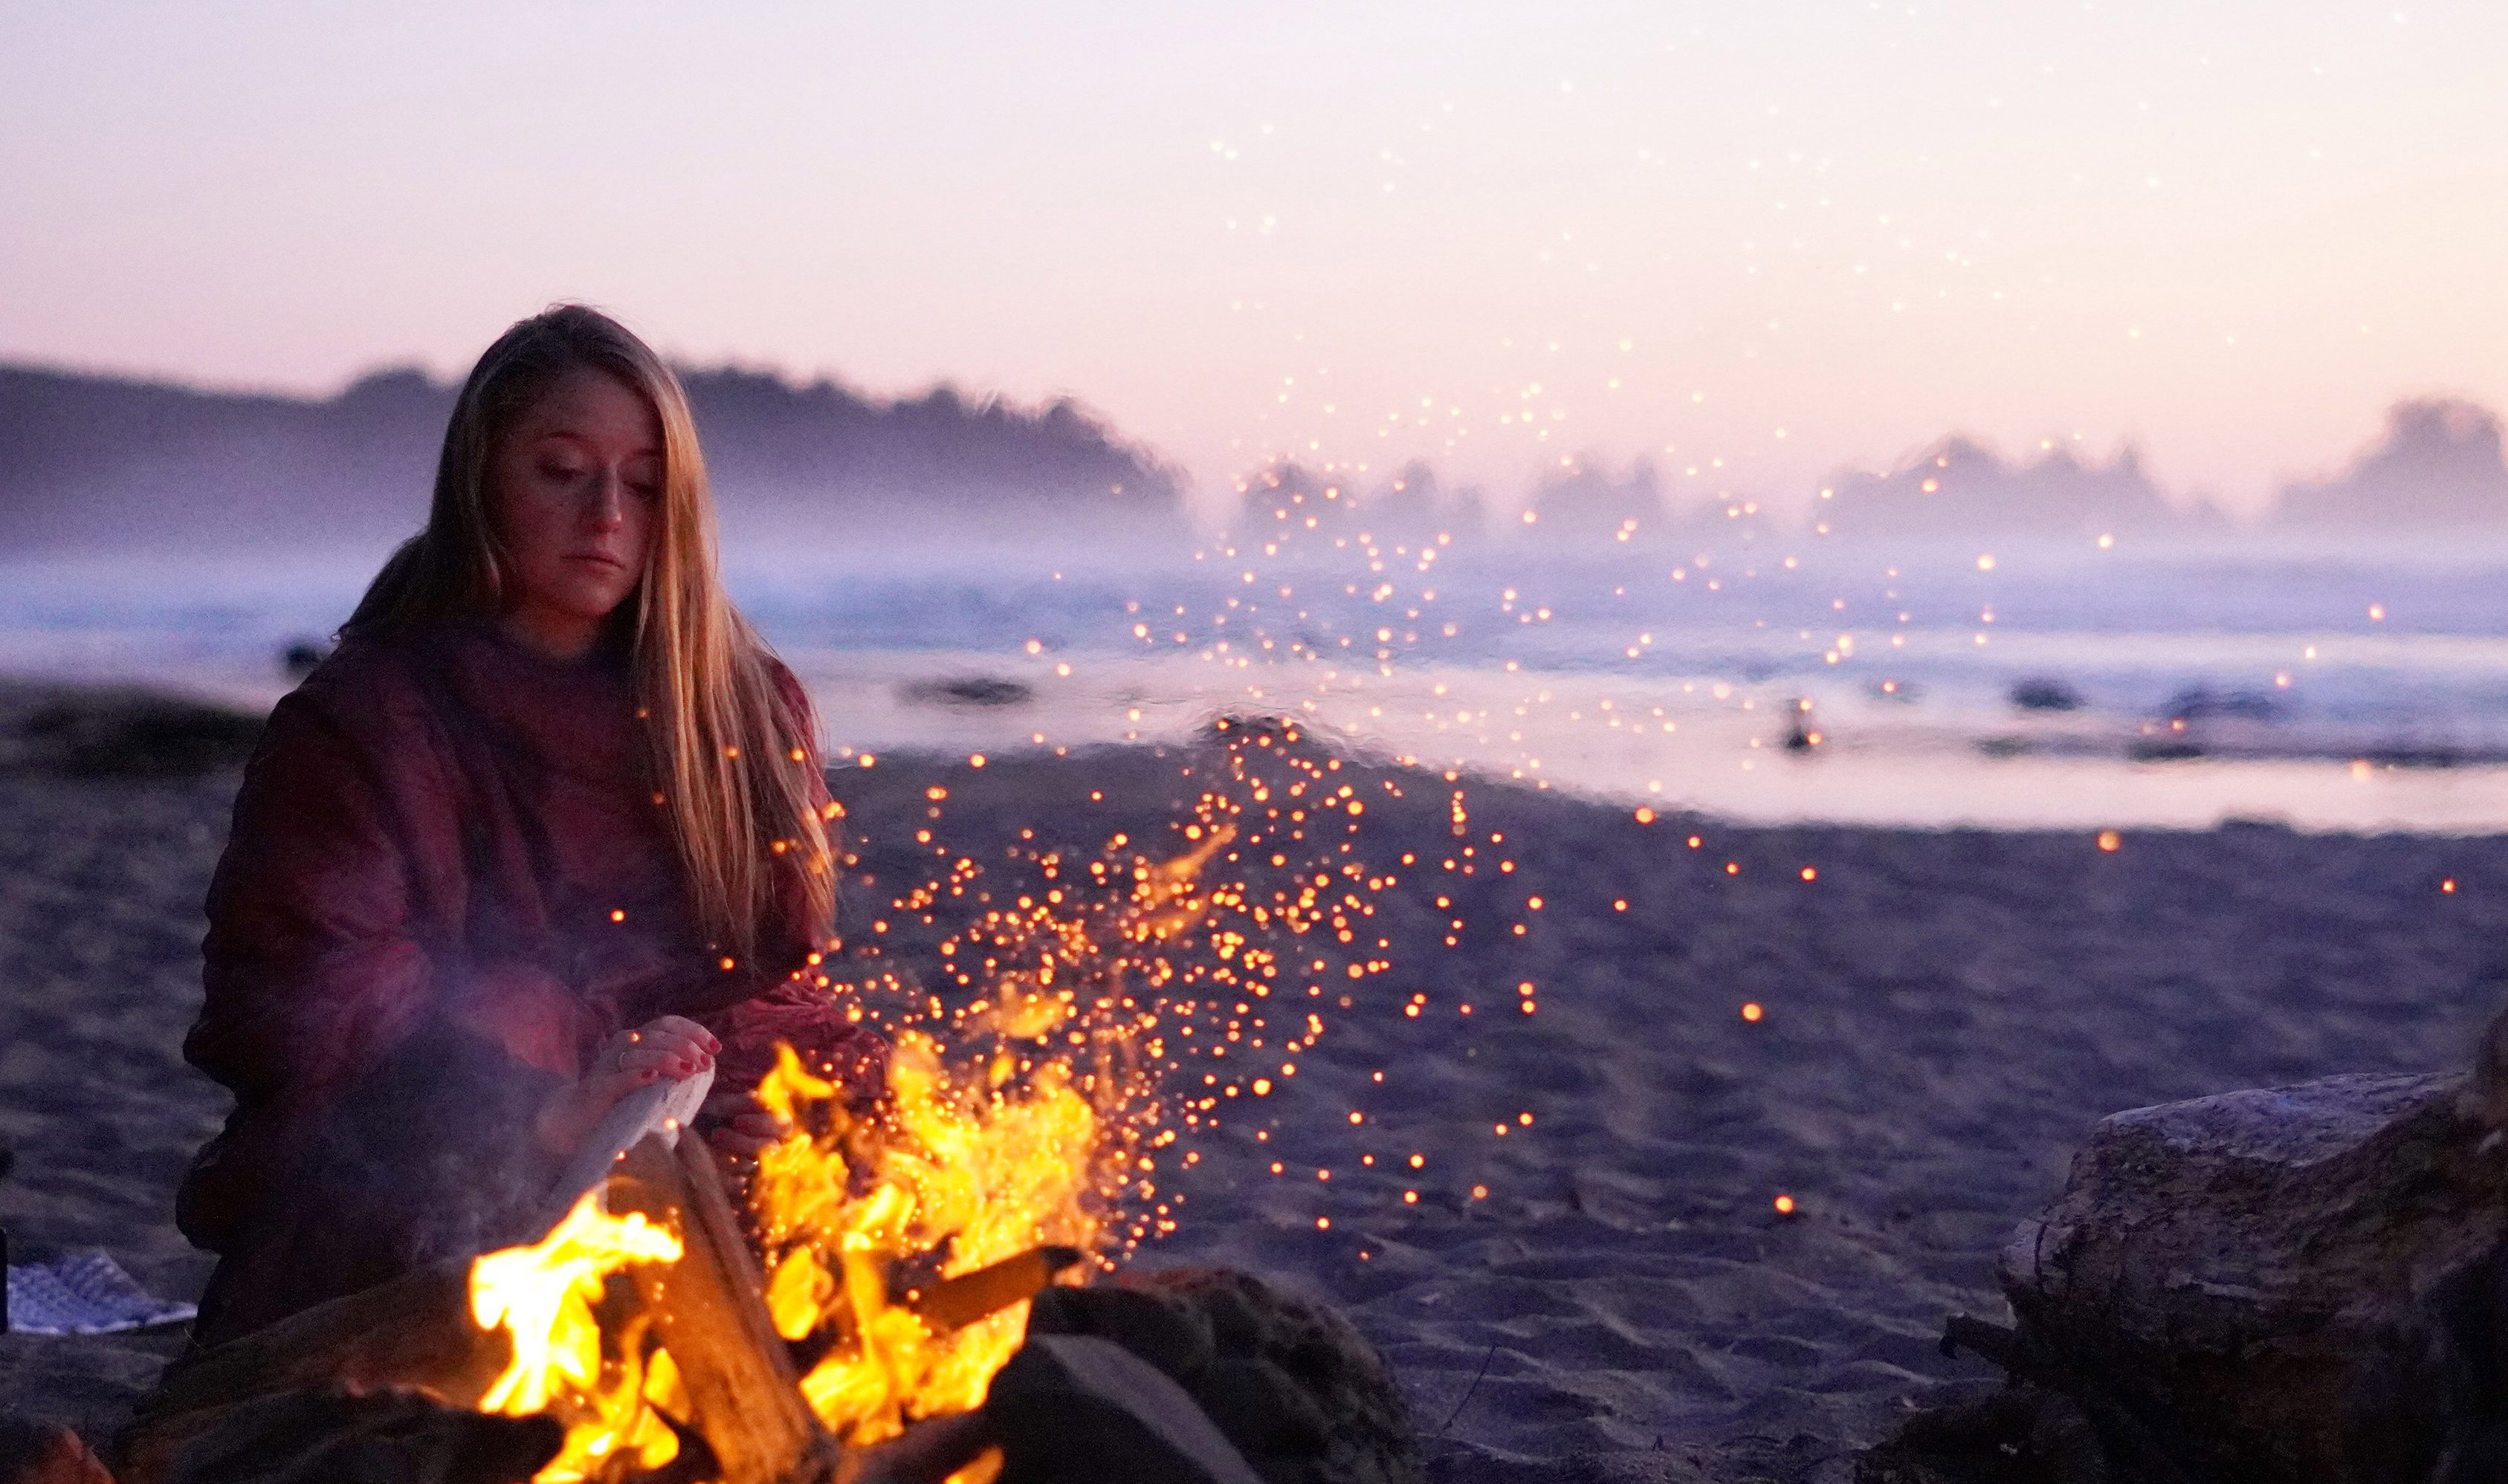 woman at campfire on the beach